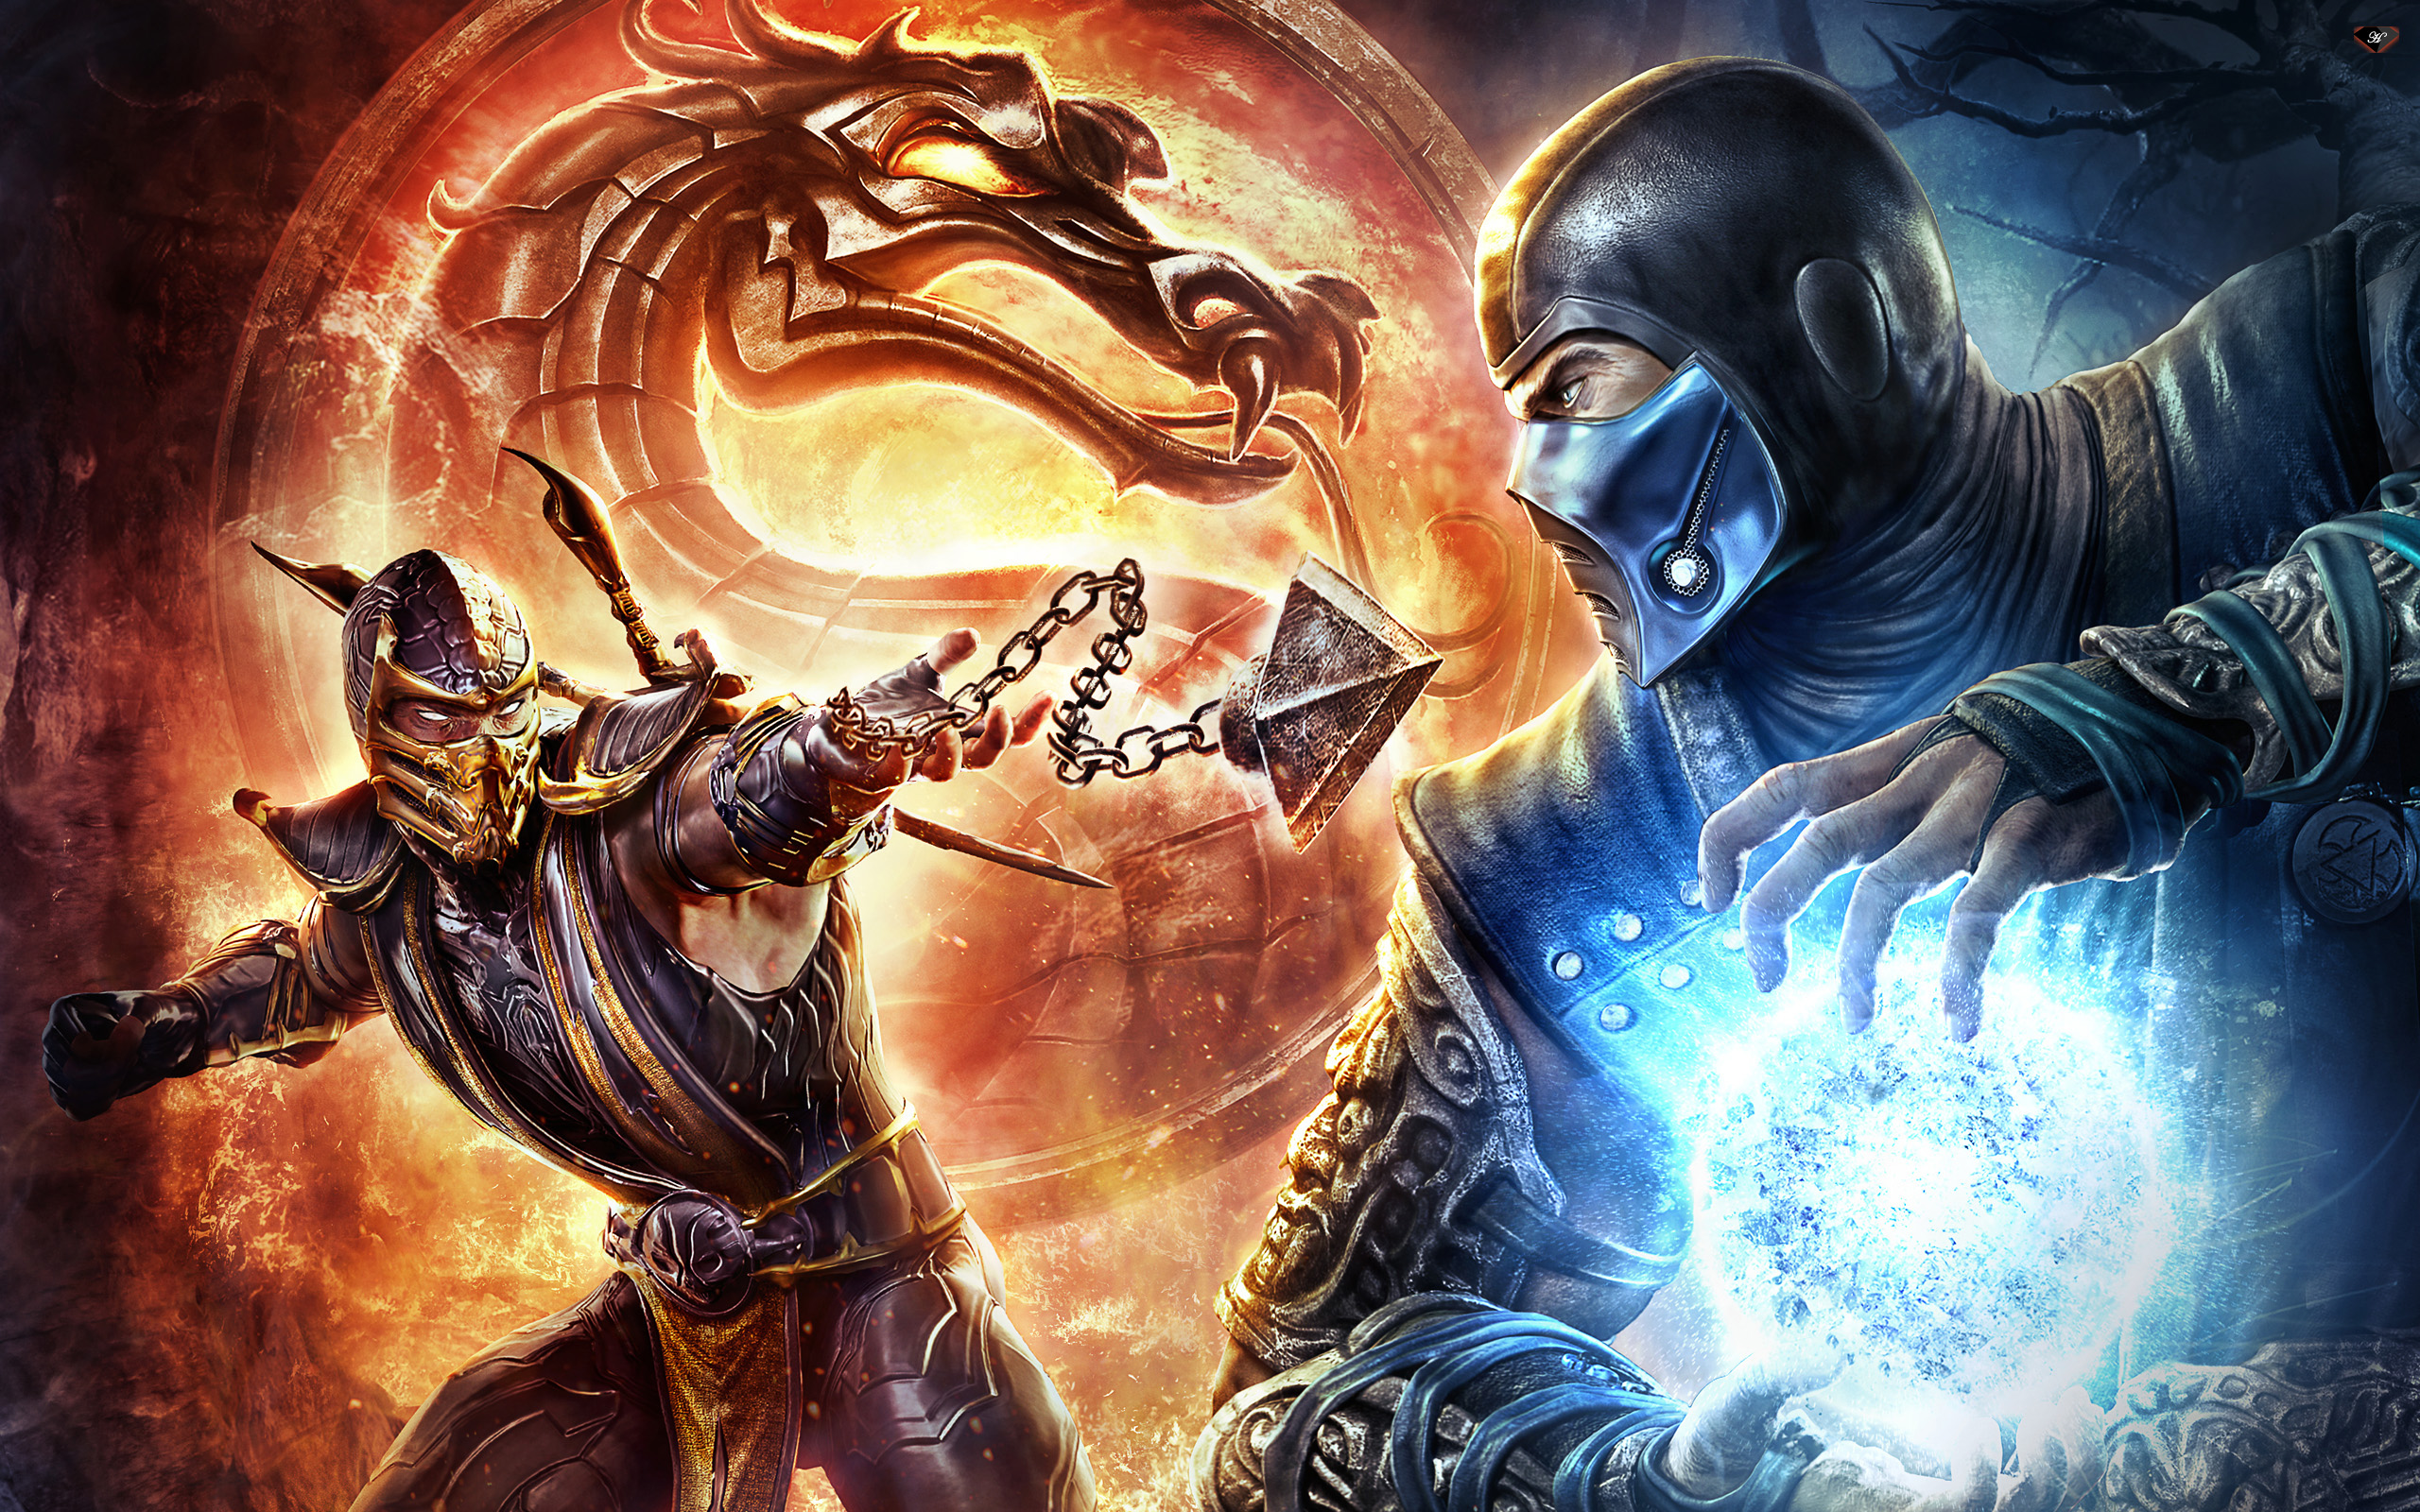 239 Mortal Kombat HD Wallpapers Background Images 2560x1600